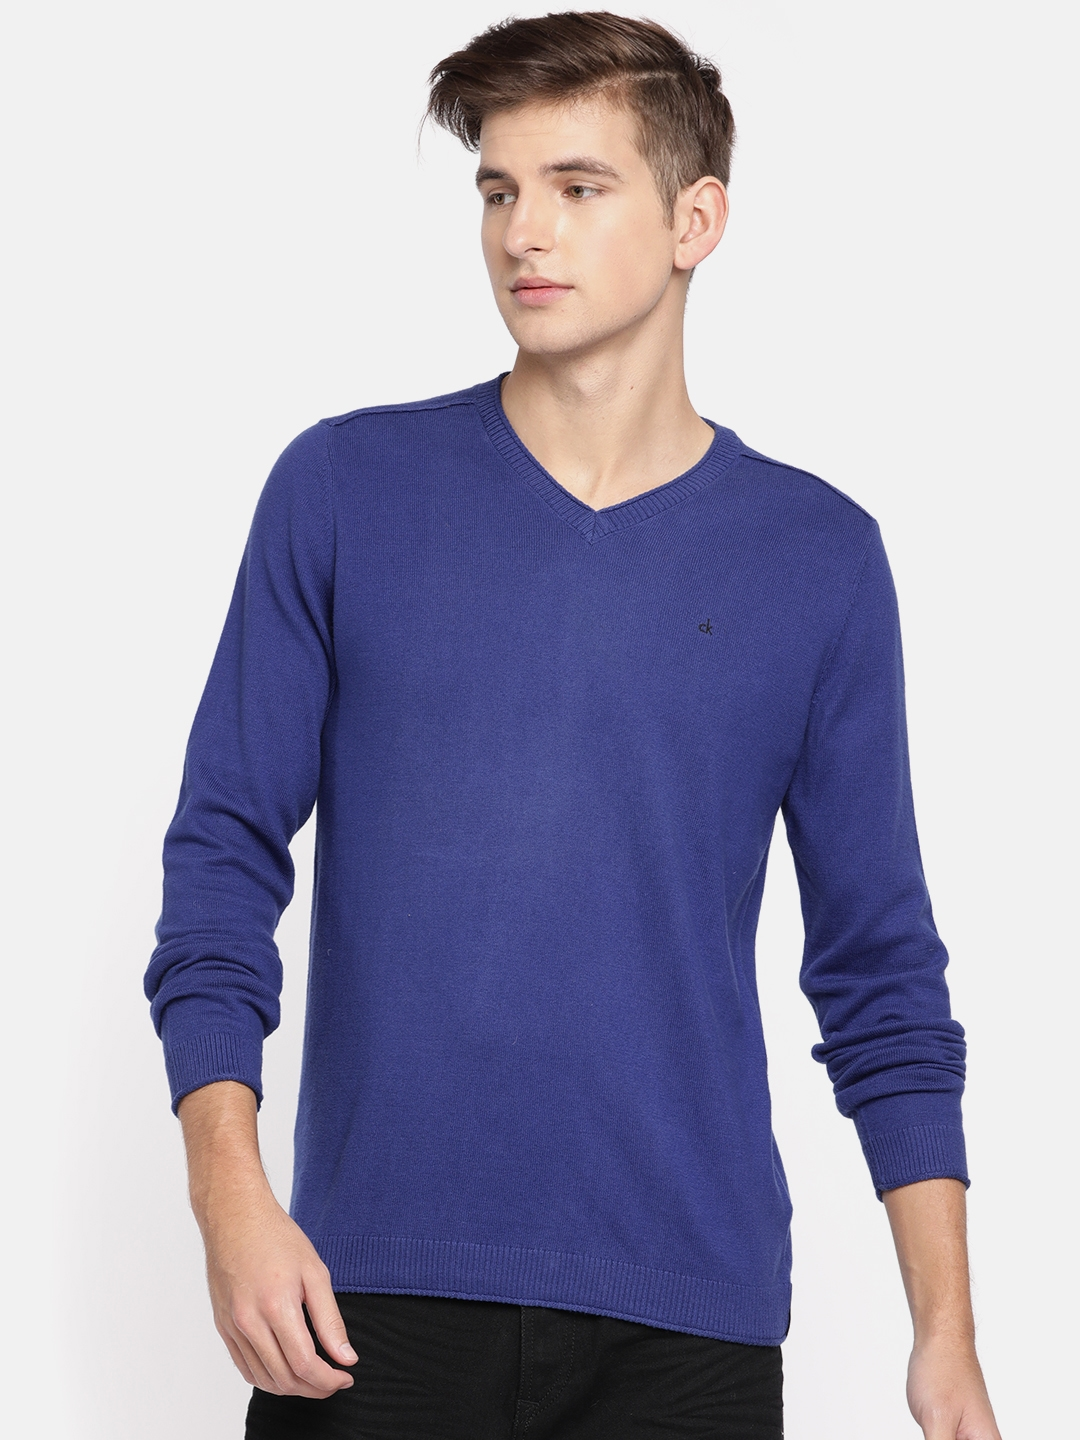 7e750b36443 Buy Calvin Klein Jeans Men Blue Solid Pullover Sweater - Sweaters ...